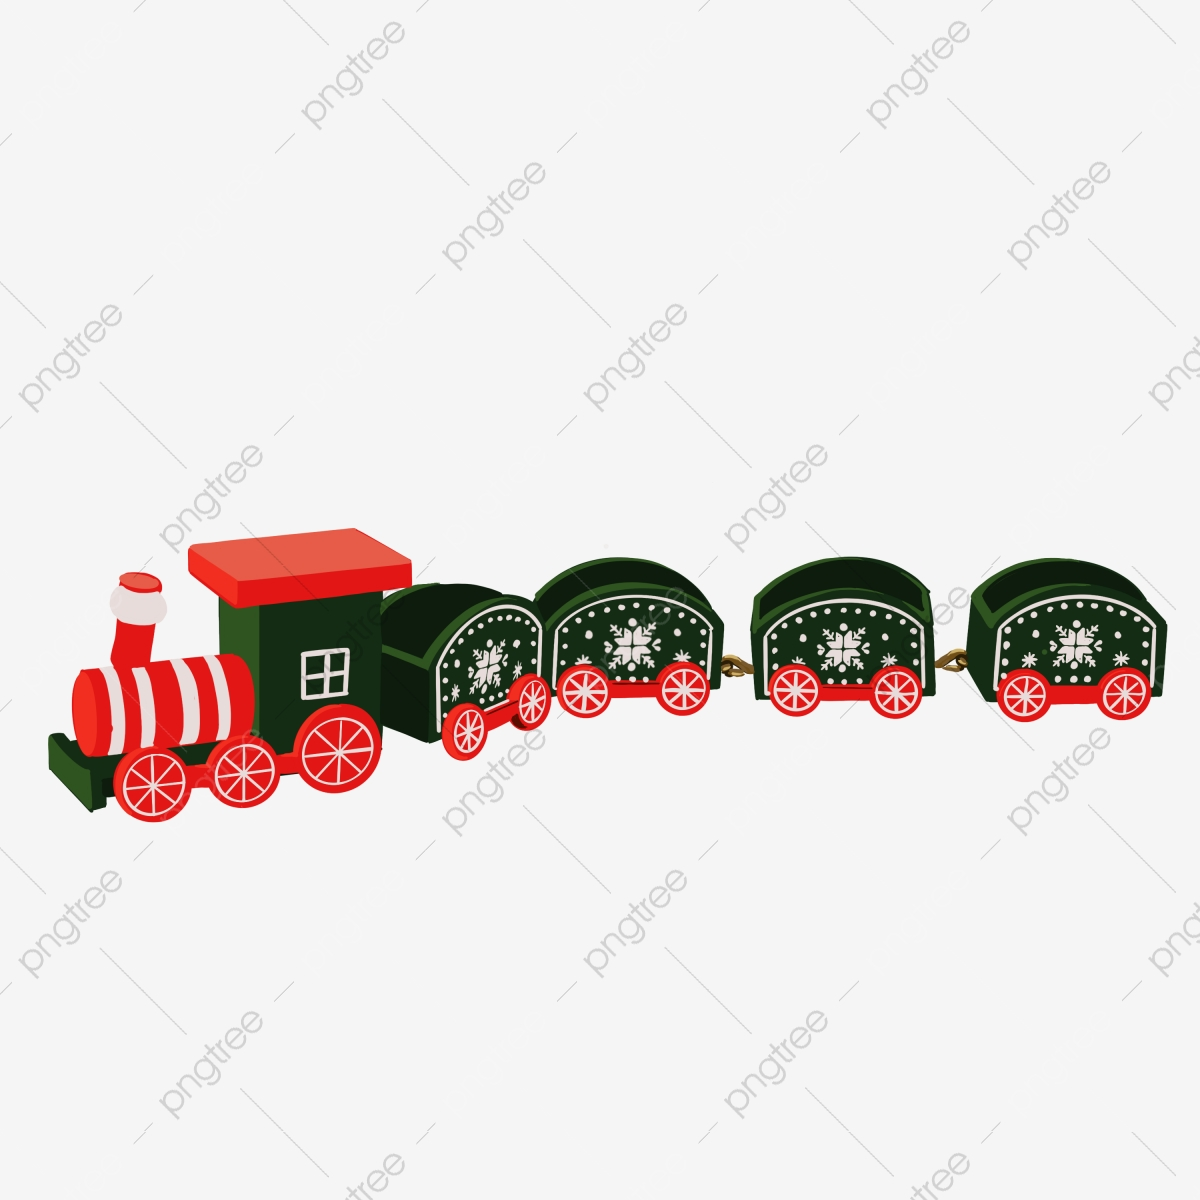 hight resolution of commercial use resource upgrade to premium plan and get license authorization upgradenow christmas exquisite hanging ornament small train